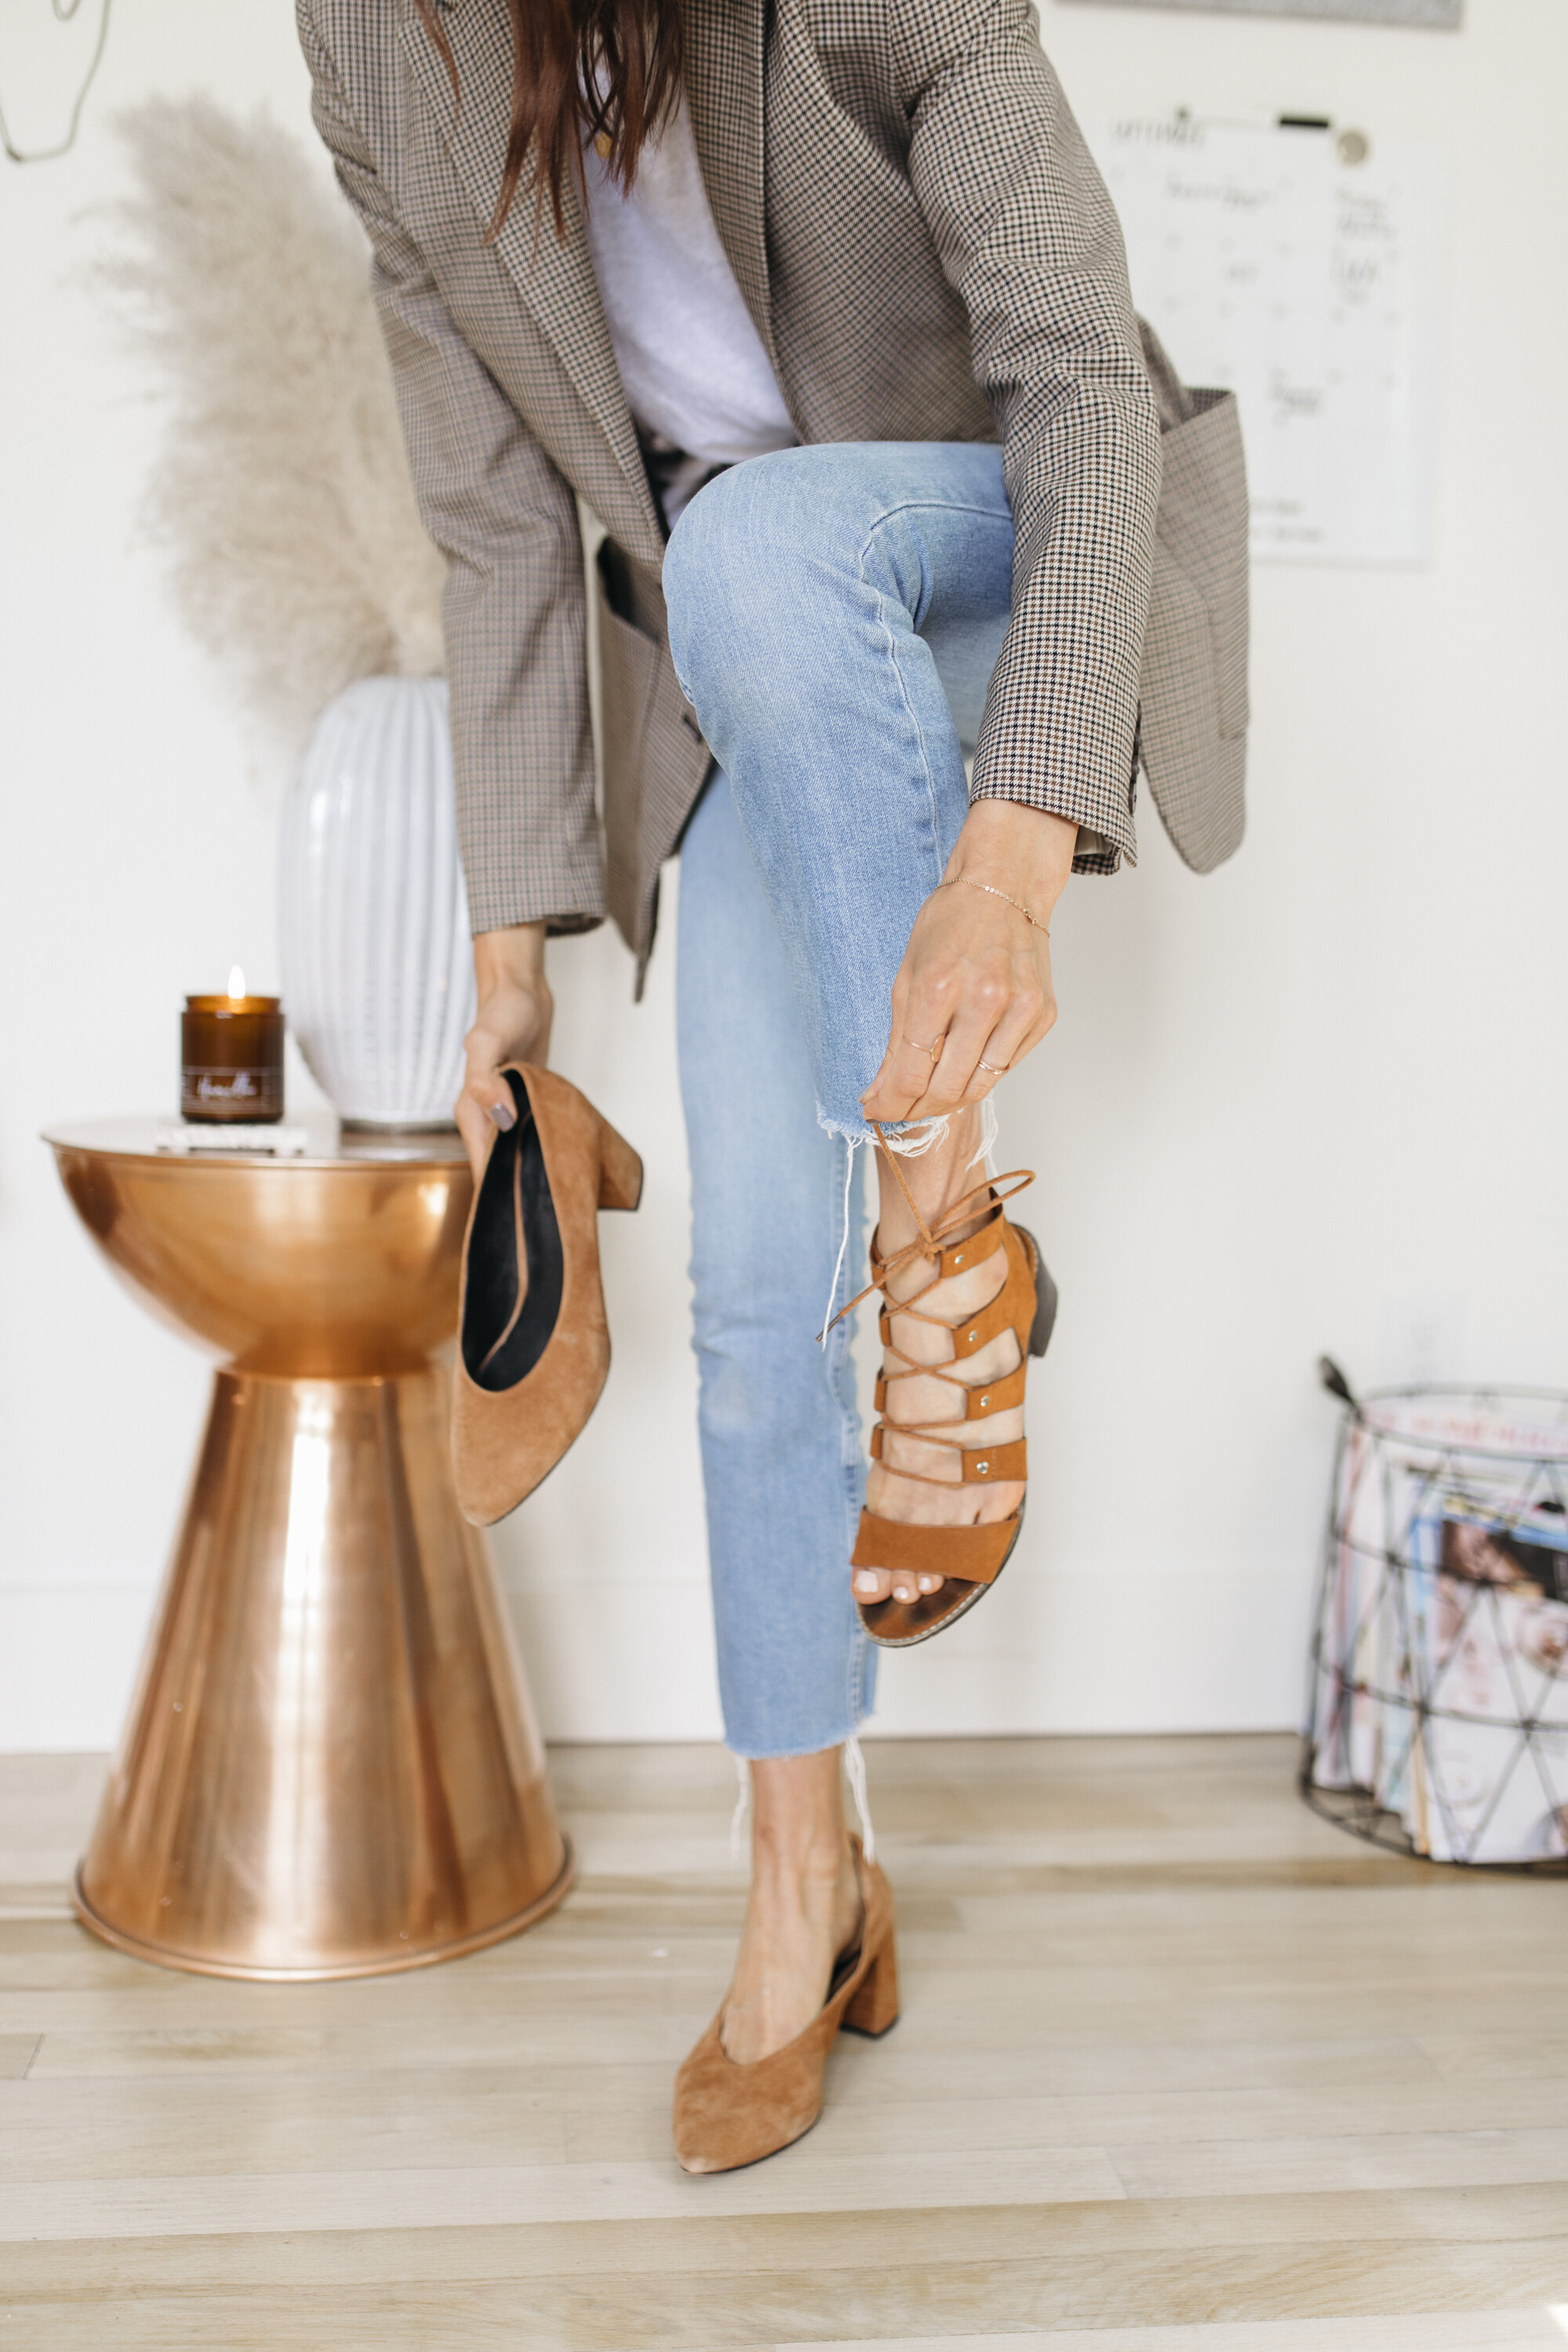 Chunky heels are perfect for the fall! Fall is here and I am so excited to transition my wardrobe using my summer clothing and warmer outerwear. Read on for fall styling tips from creative lifestyle and fashion travel blogger emily r hess, the founder of luca creative co